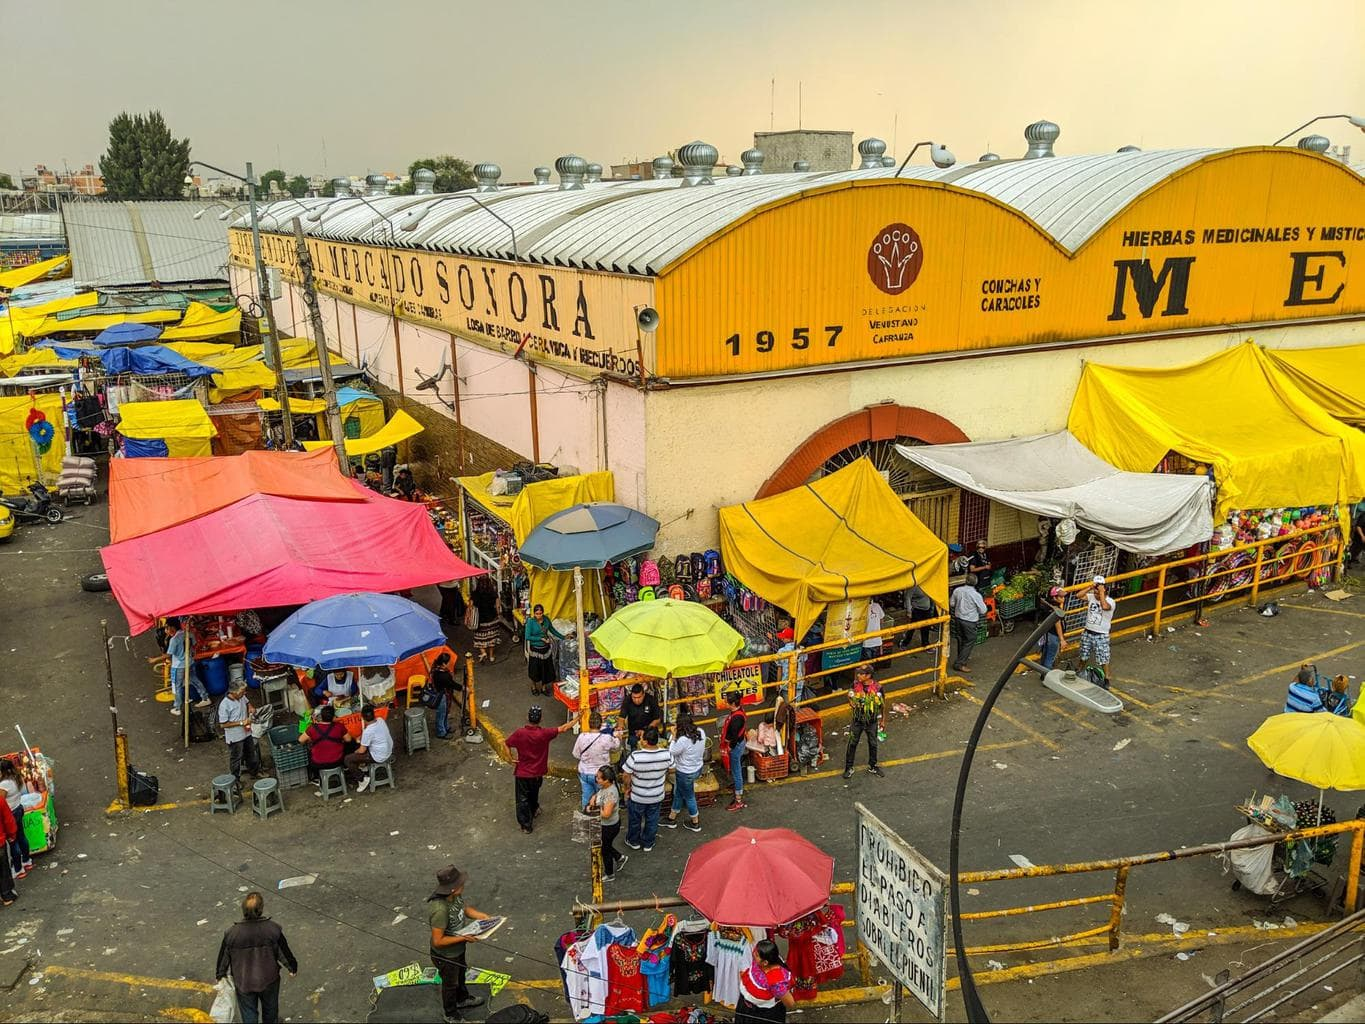 Mercado de Sonora in Mexico City